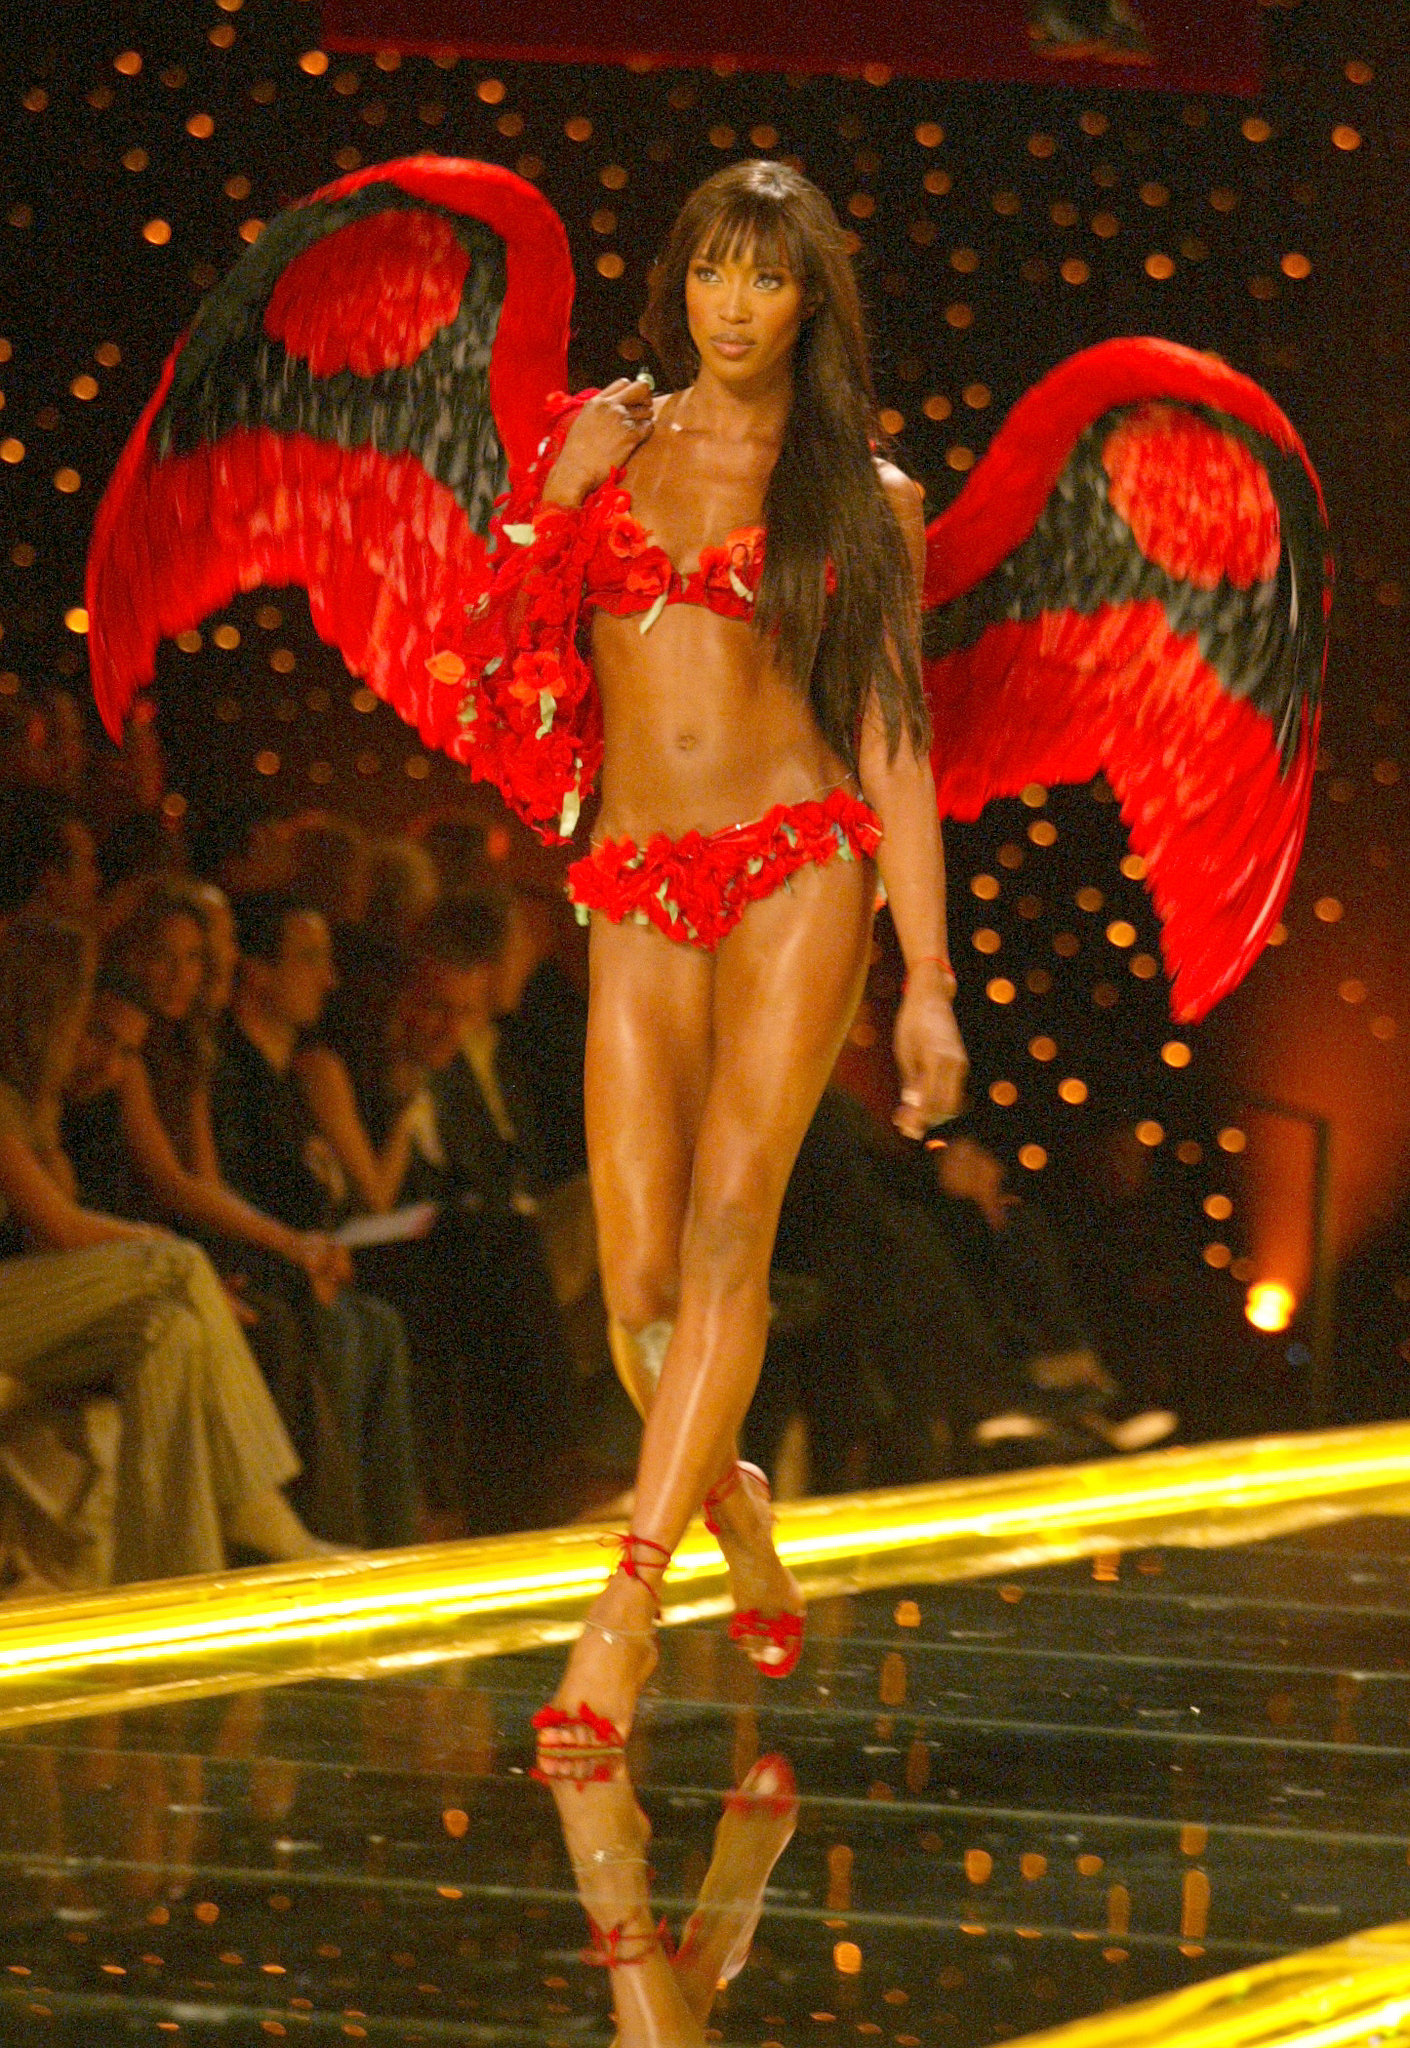 In 2003, Naomi Campbell sported polka-dot lingerie and black and red wings.